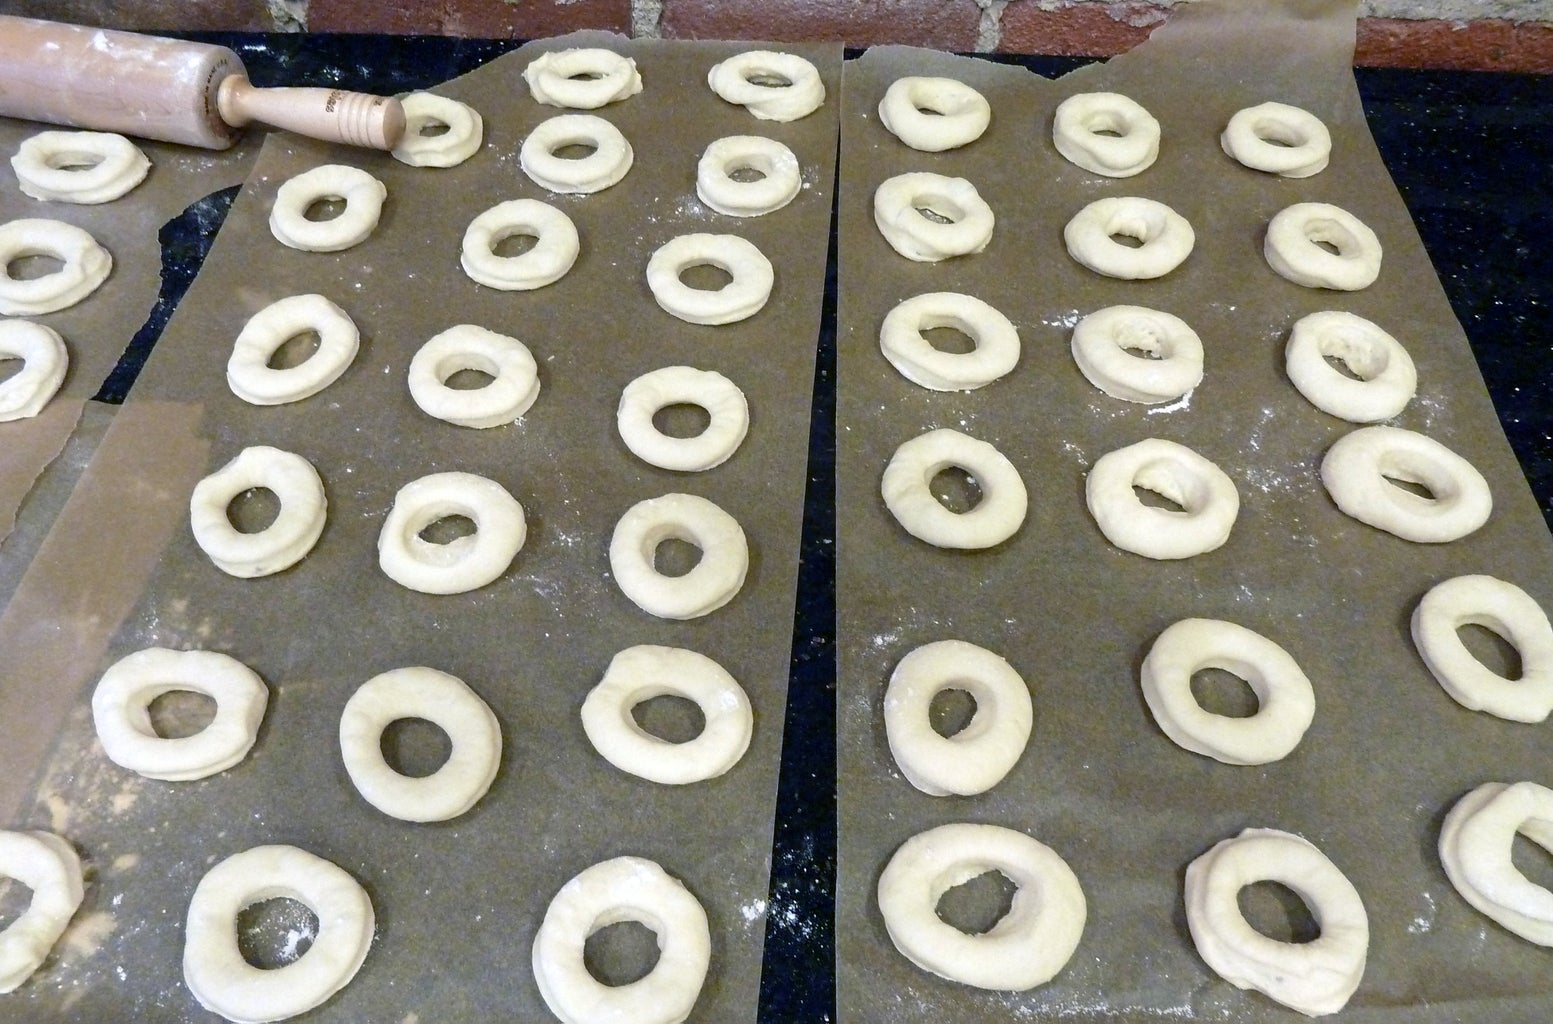 Shaping the Donuts